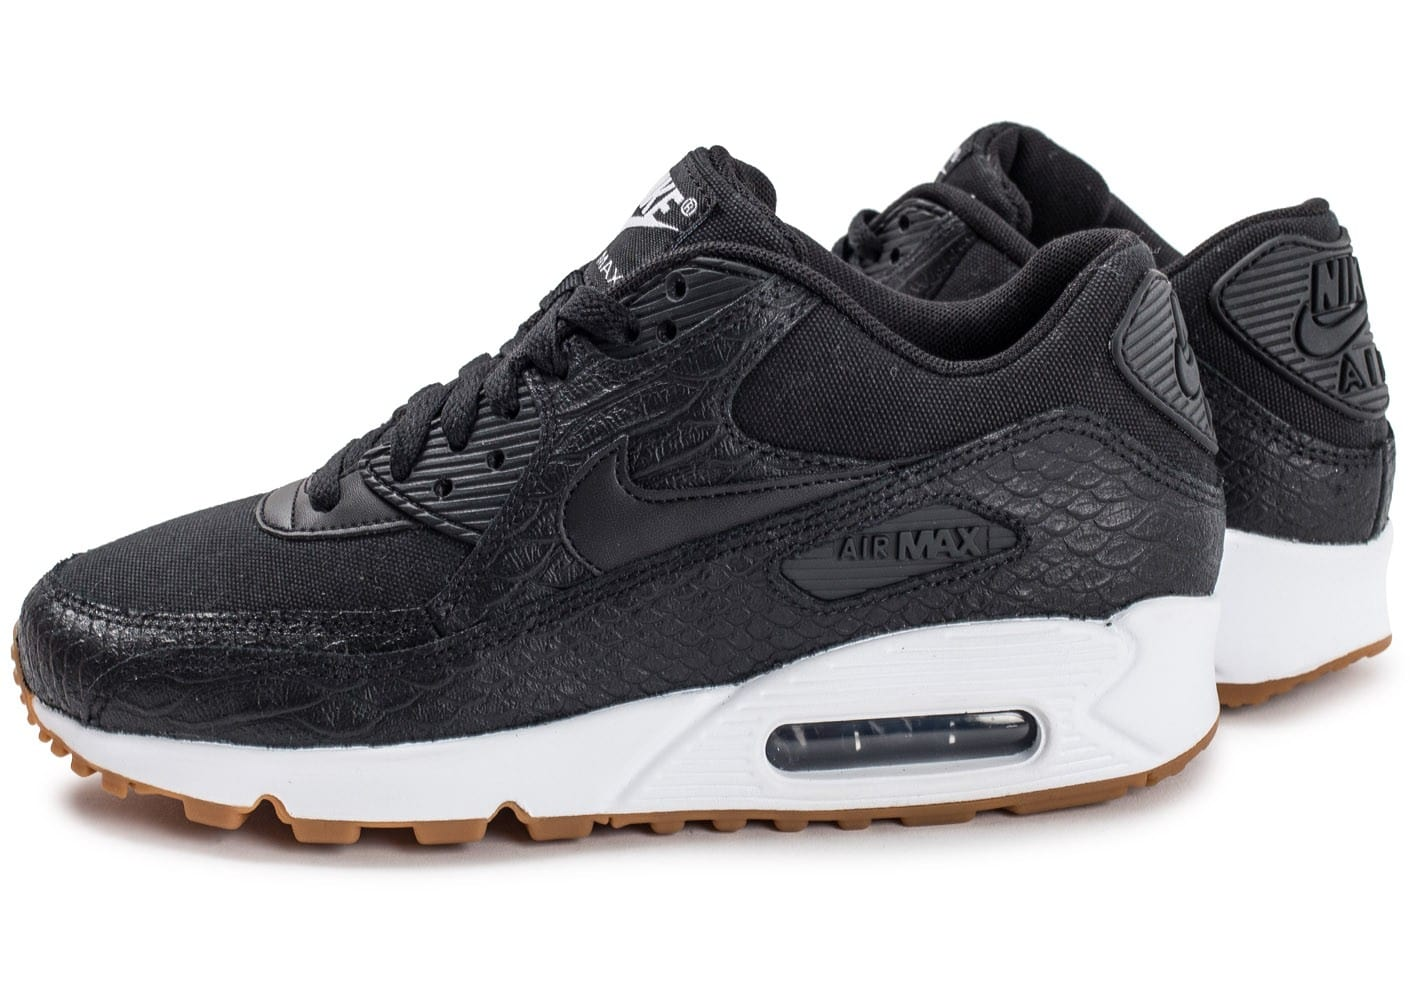 unique design good looking where to buy air max 90 premium,nike air max 90 marron et noir femme